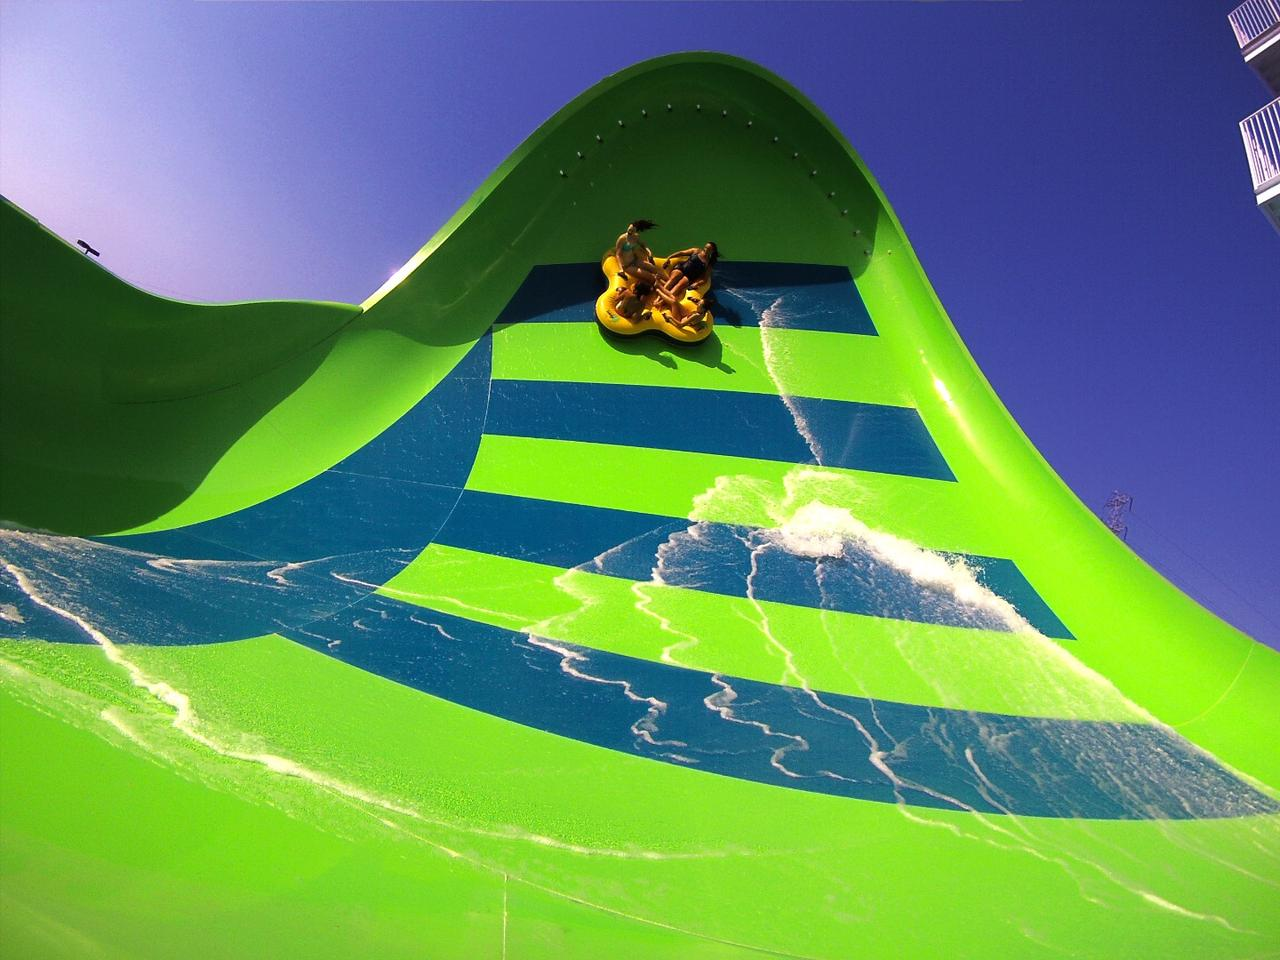 ProSlide has installed 47 of its TornadoWAVE rides at water parks around the world